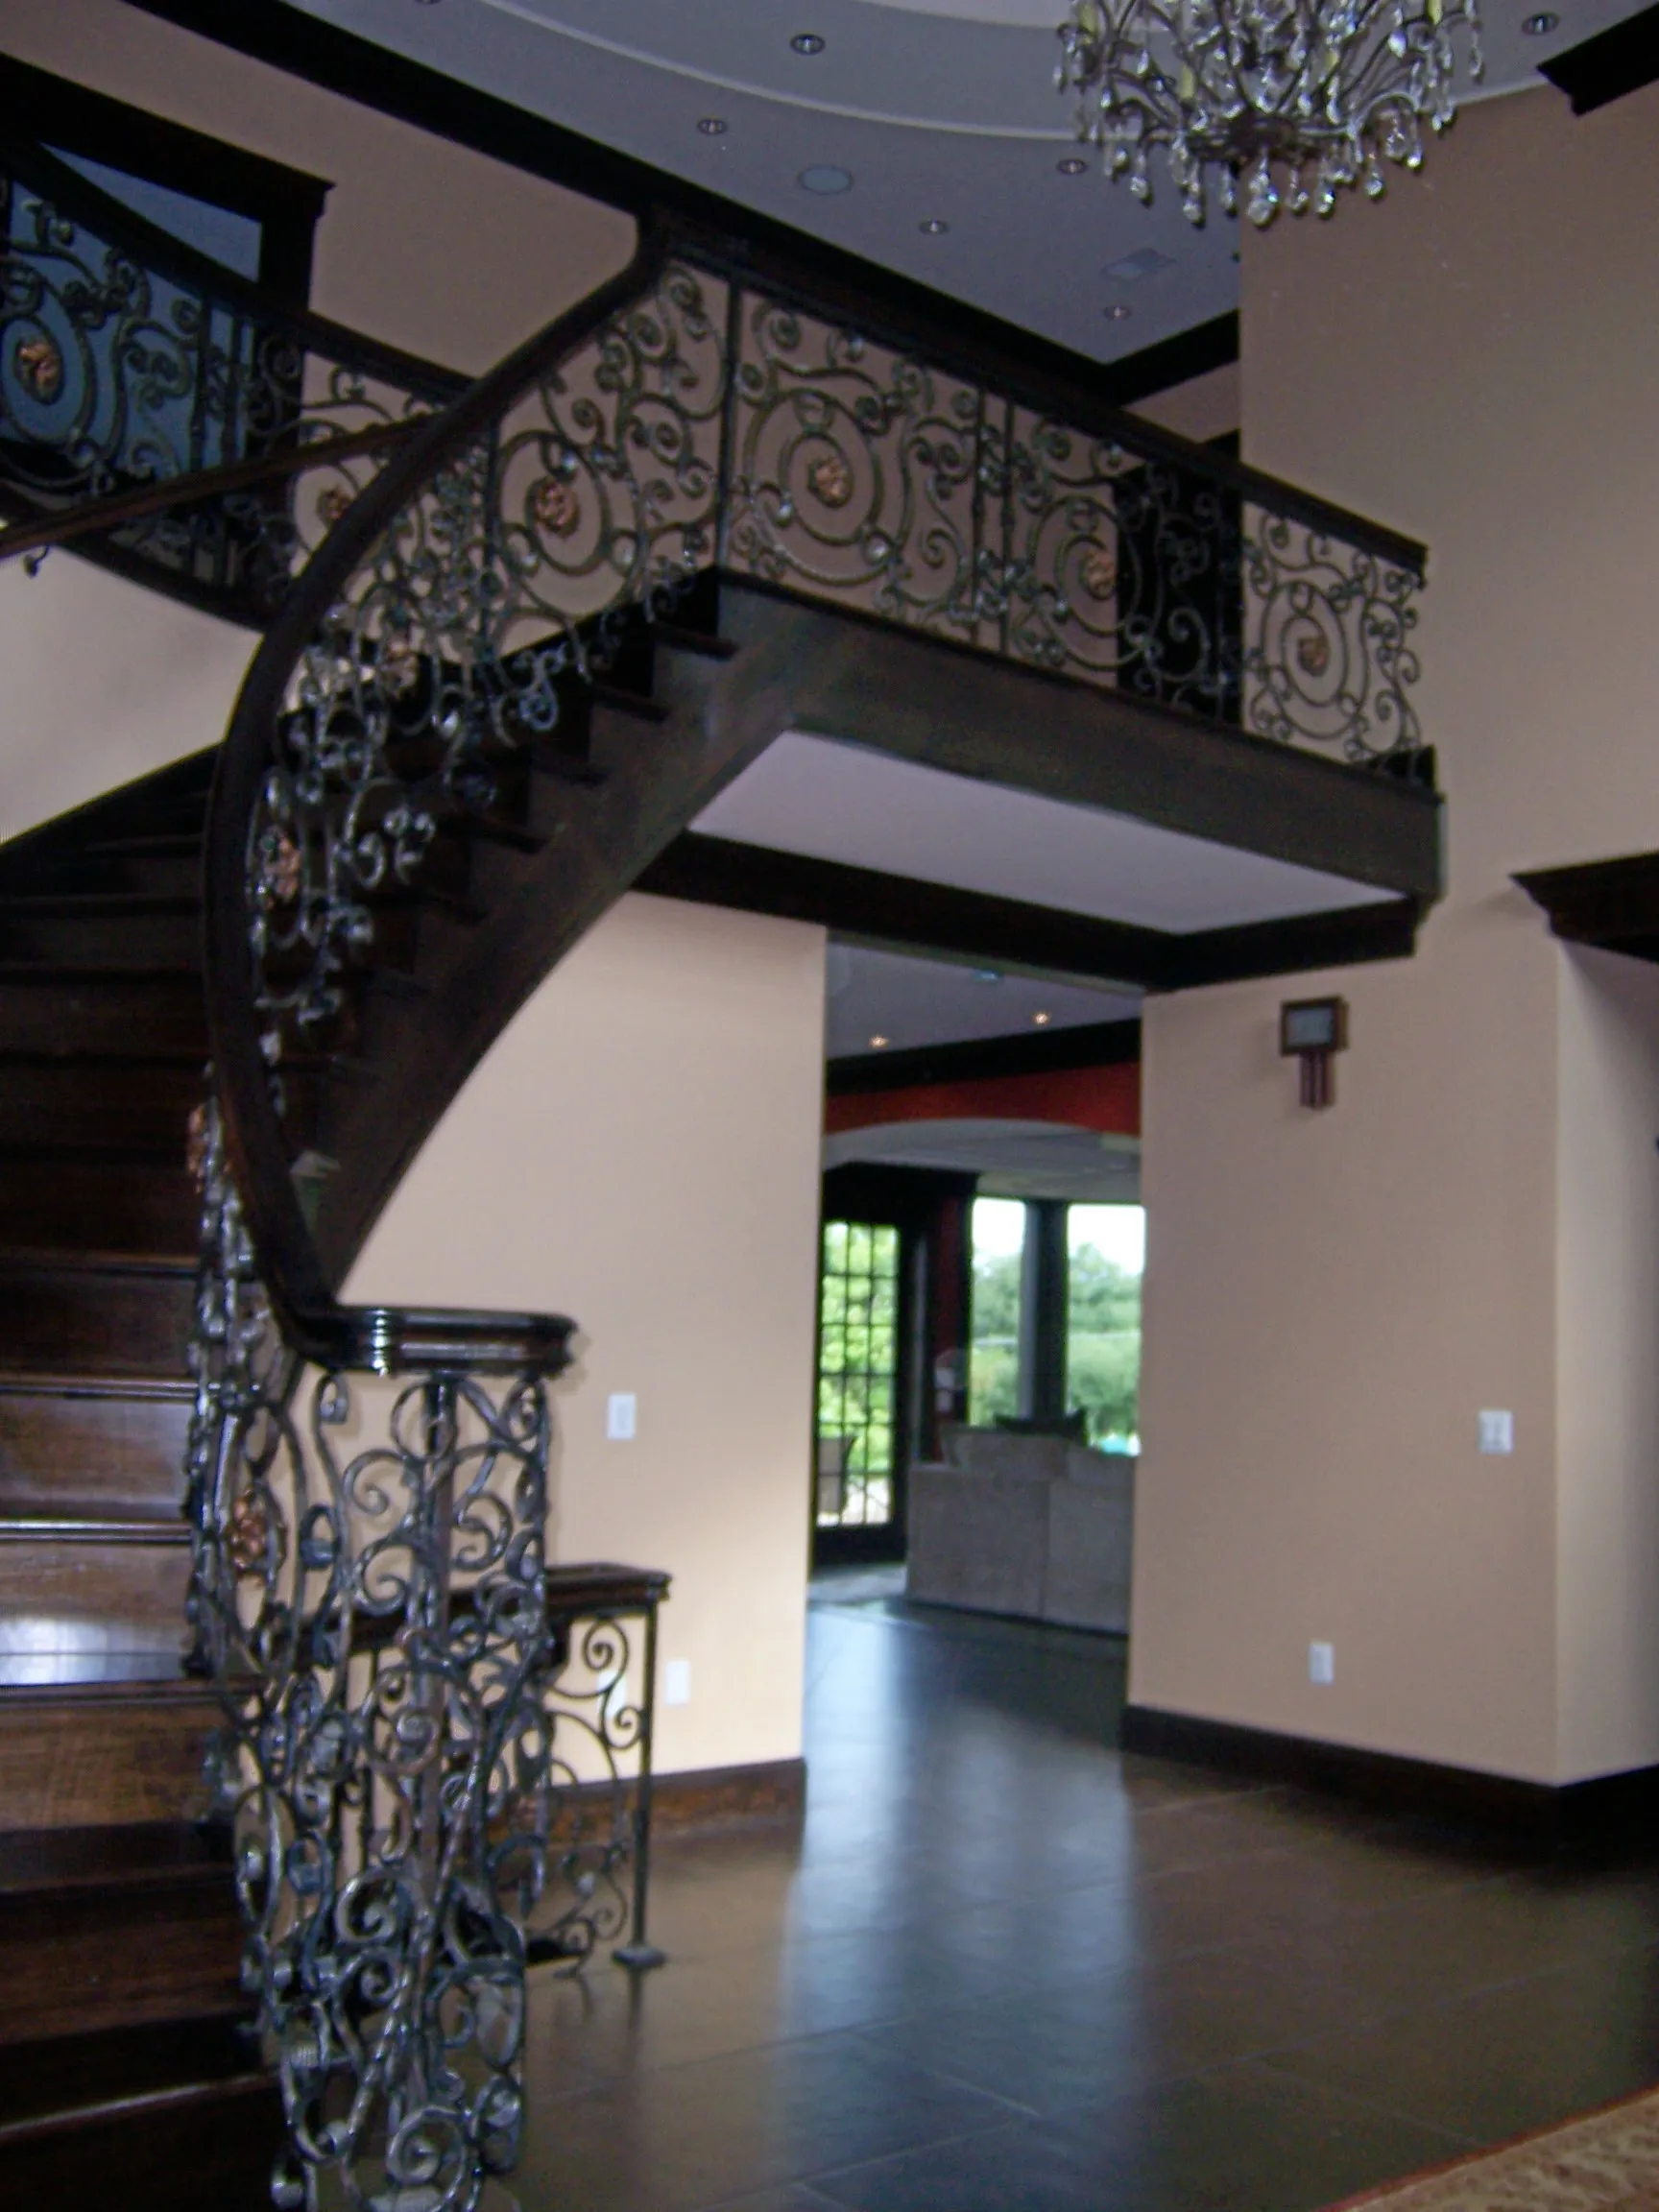 Metal Framework Stairs Indoors And On The Porch – Staircase Design | Metal Staircases For Homes | Beam | Stainless Steel | Support | Statement | Metallic